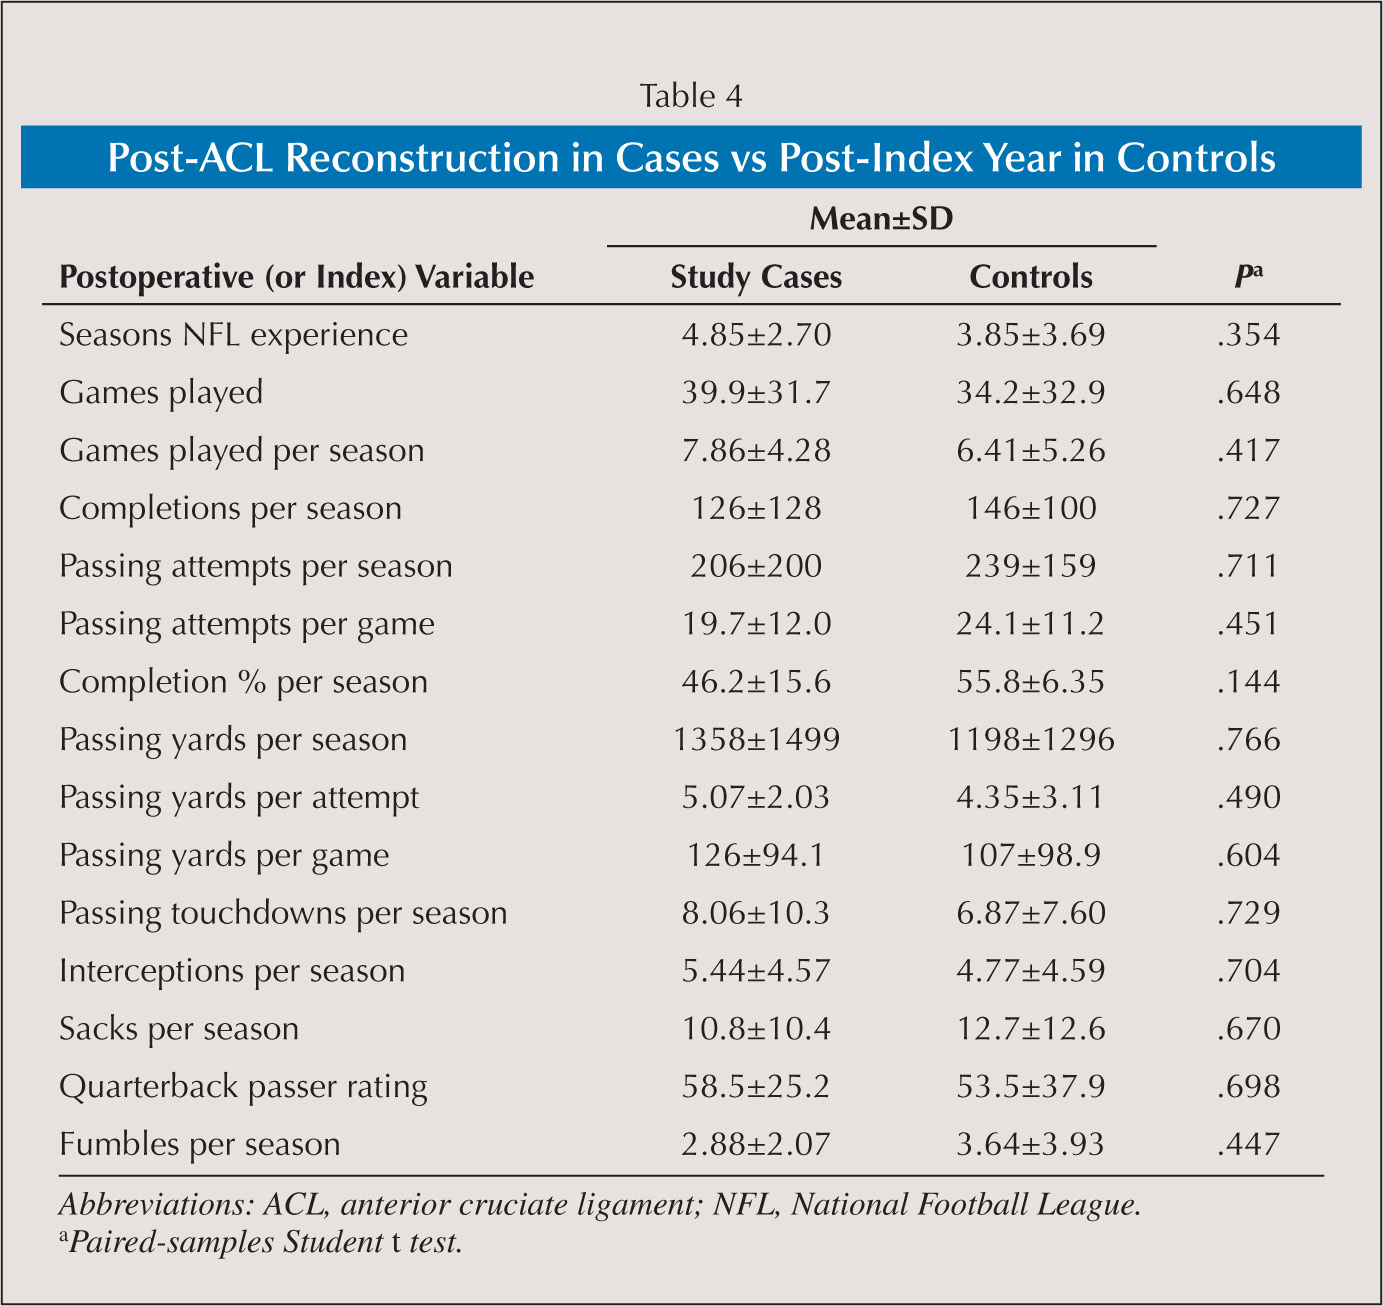 Post-ACL Reconstruction in Cases vs Post-Index Year in Controls